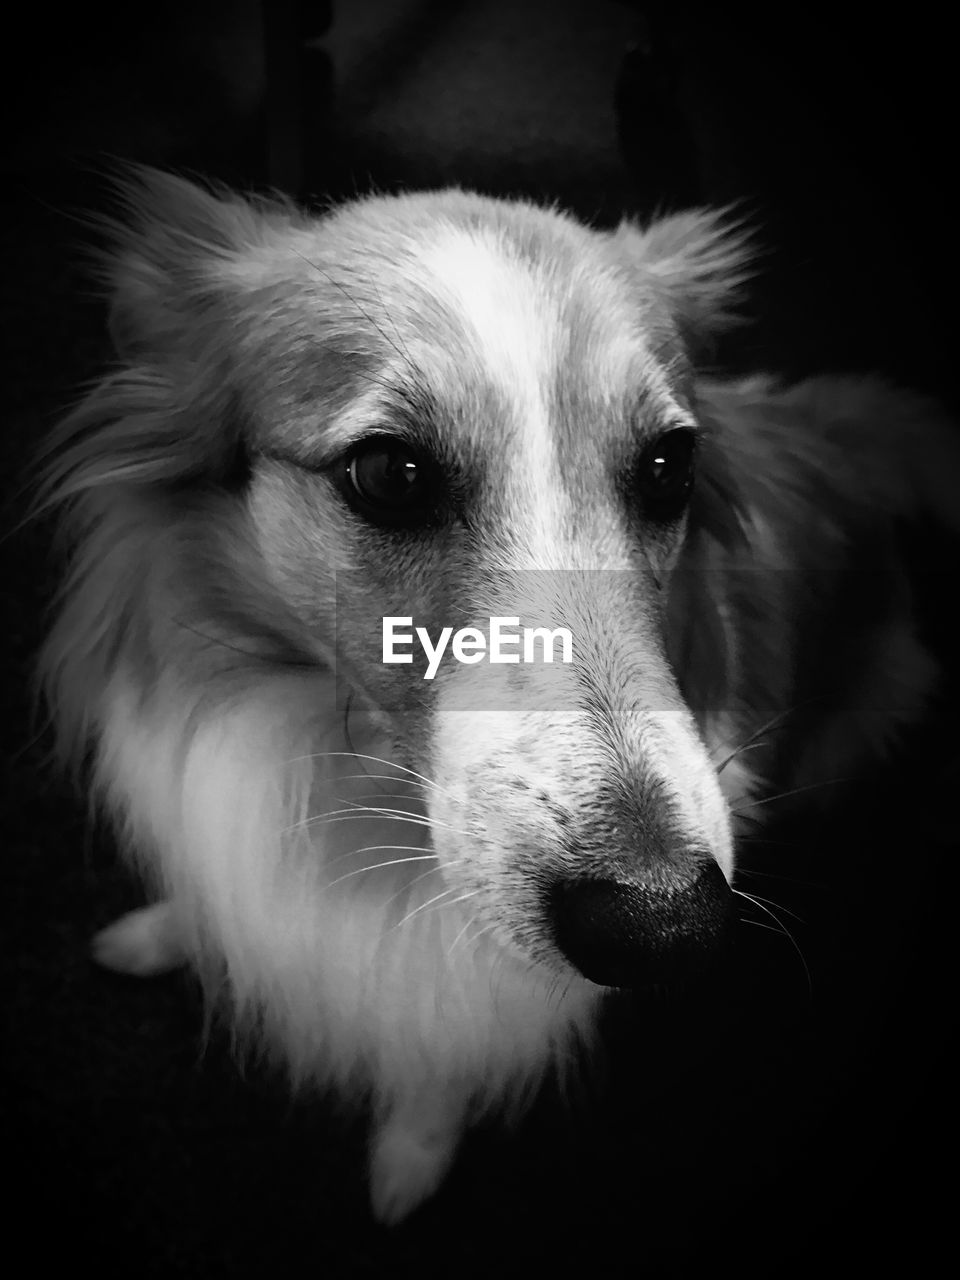 one animal, dog, canine, domestic, mammal, pets, animal, domestic animals, animal themes, vertebrate, close-up, portrait, animal body part, animal head, indoors, looking away, no people, relaxation, looking, black background, snout